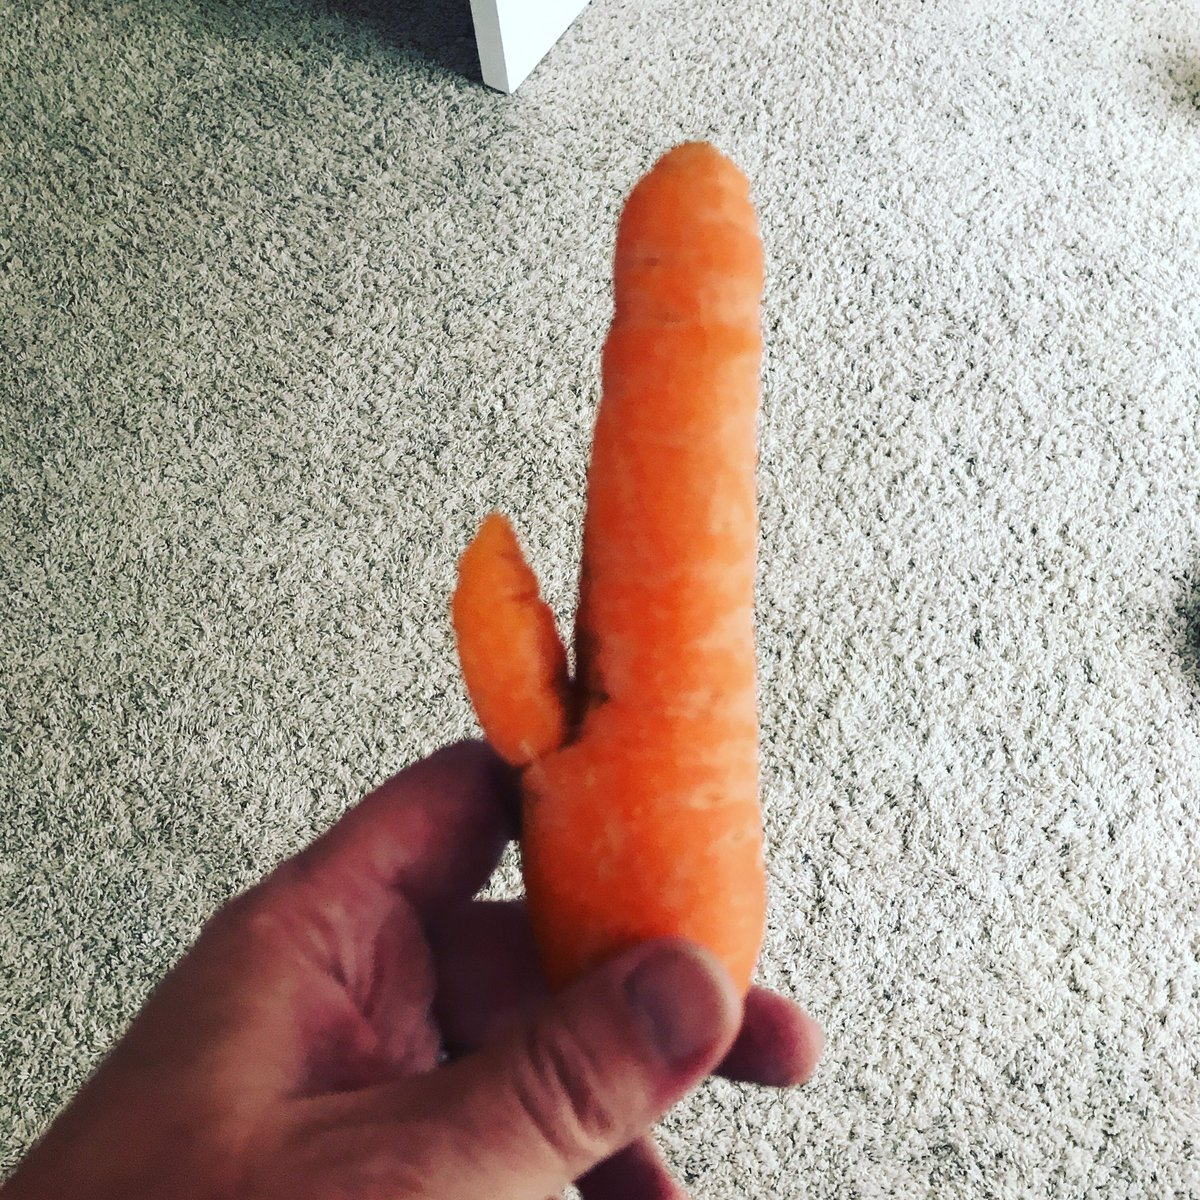 When my home grown carrots can be sold at sex shop! #dirtycarrots https://t.co/E9PveLLoId